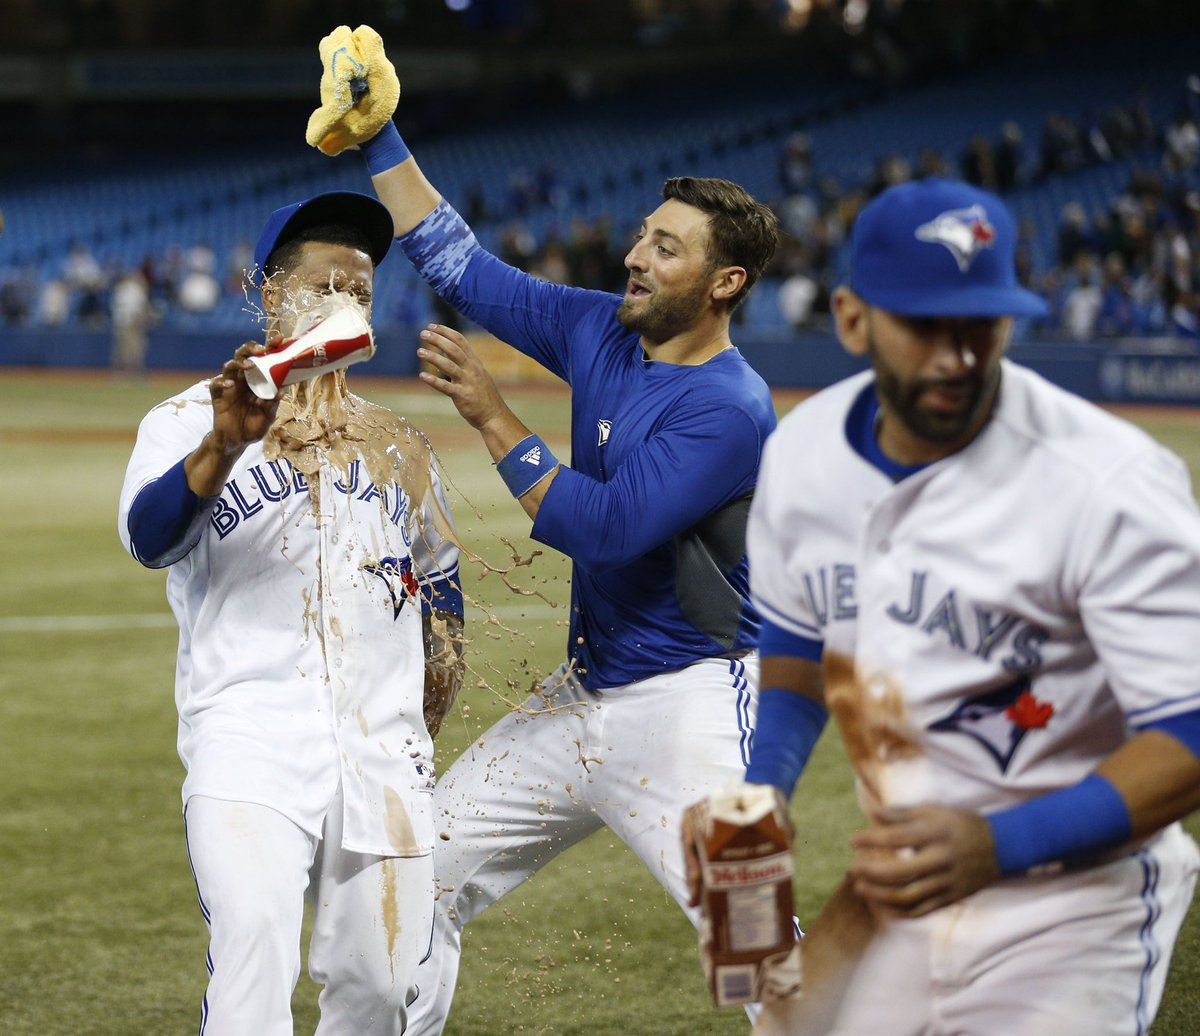 This one hurts. Been my locker-mate since 2014. Going to be crazy not having you there. Love you bro. Hope this move brings you joy and happiness for you and your family! @KPILLAR4 https://t.co/SxenMky7RD